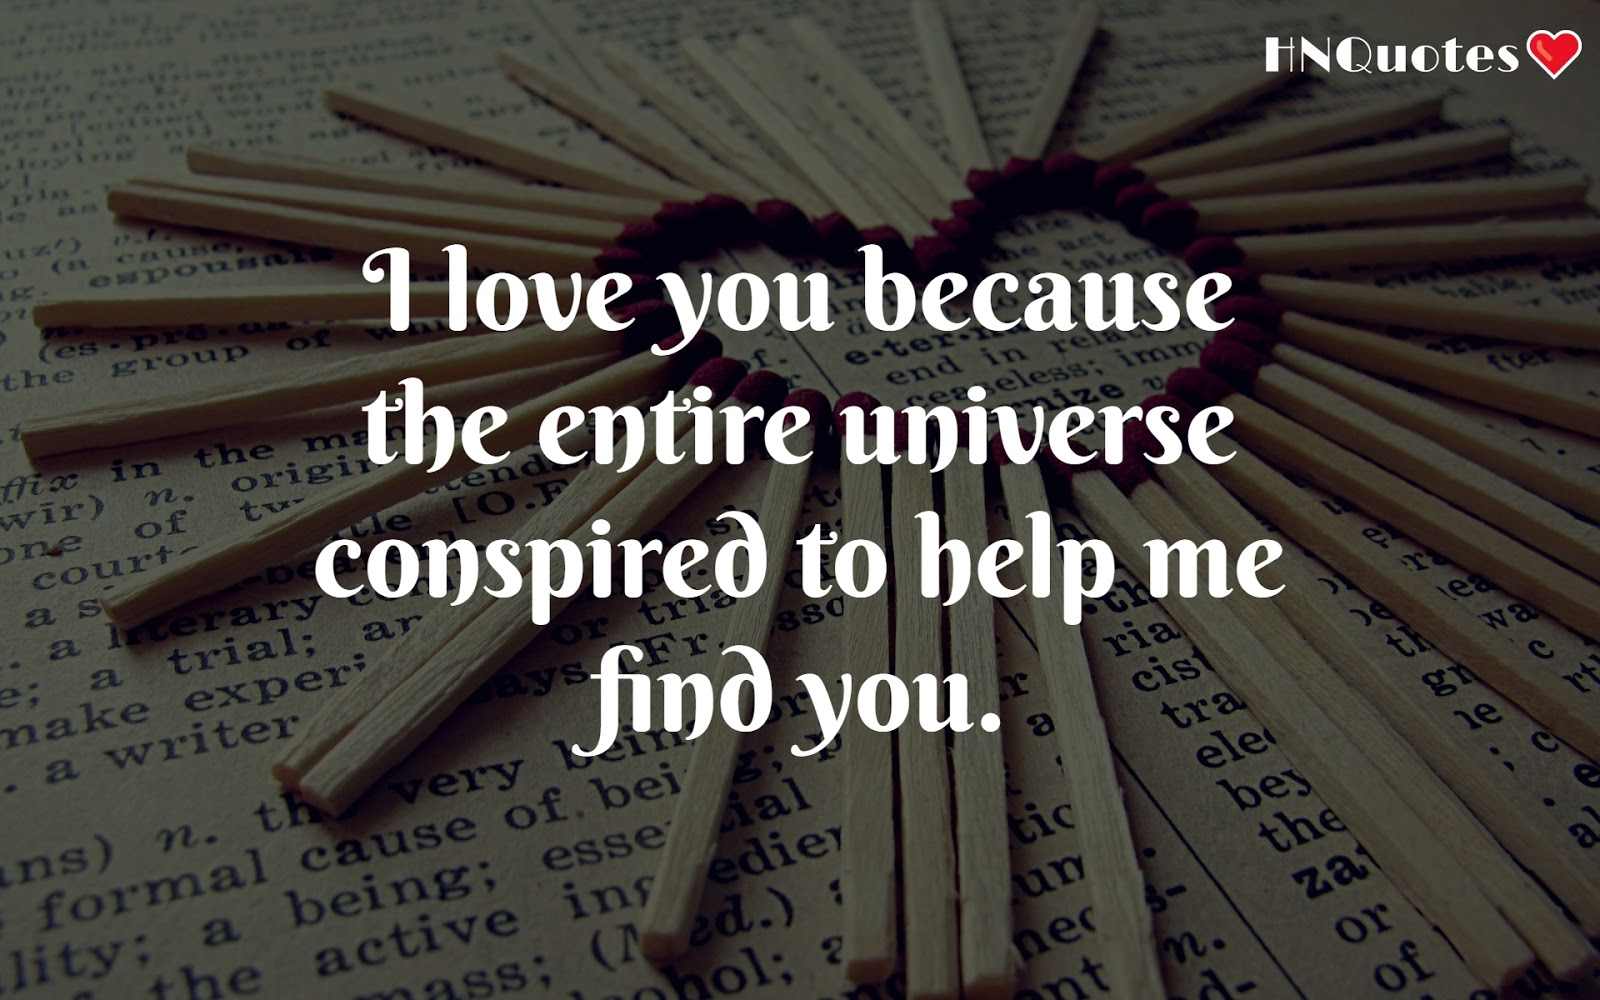 Romantic-Quotes-about-Love-Forever-I-Love-You-61-[HNQuotes]